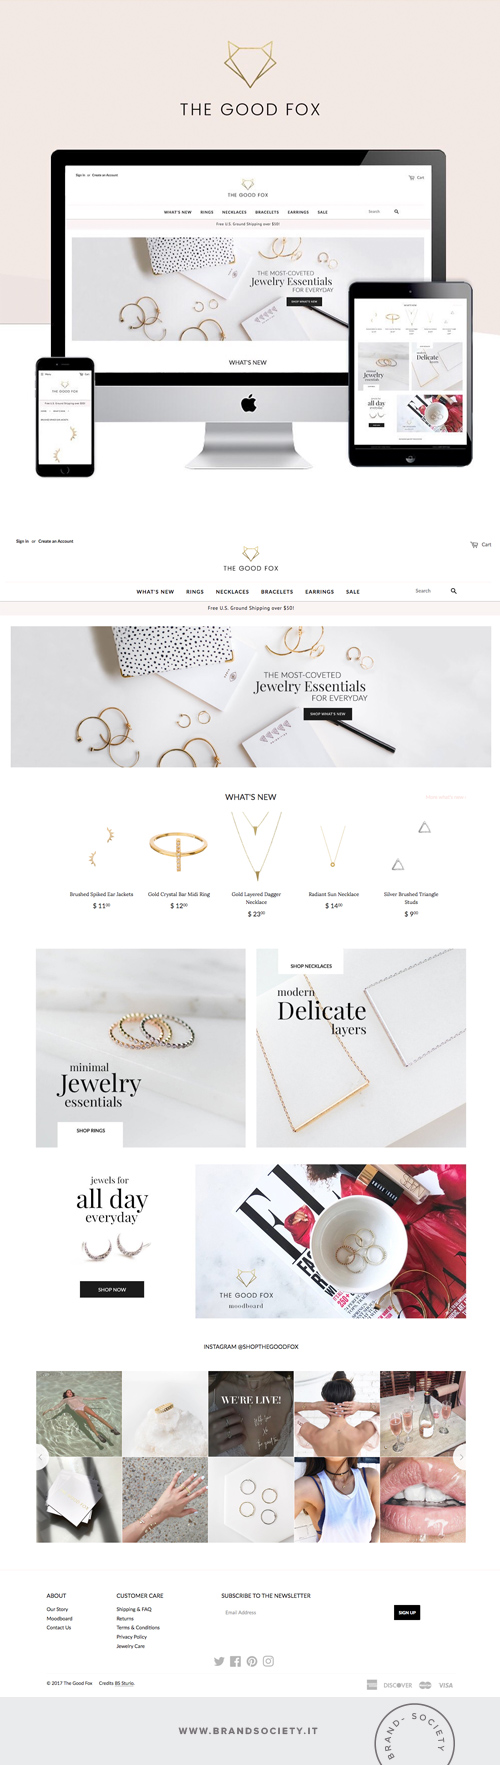 THE GOOD FOX    SERVICES  || SHOPIFY WEBSITE | BRANDING | STORE DESIGN | COLOR PALETTE